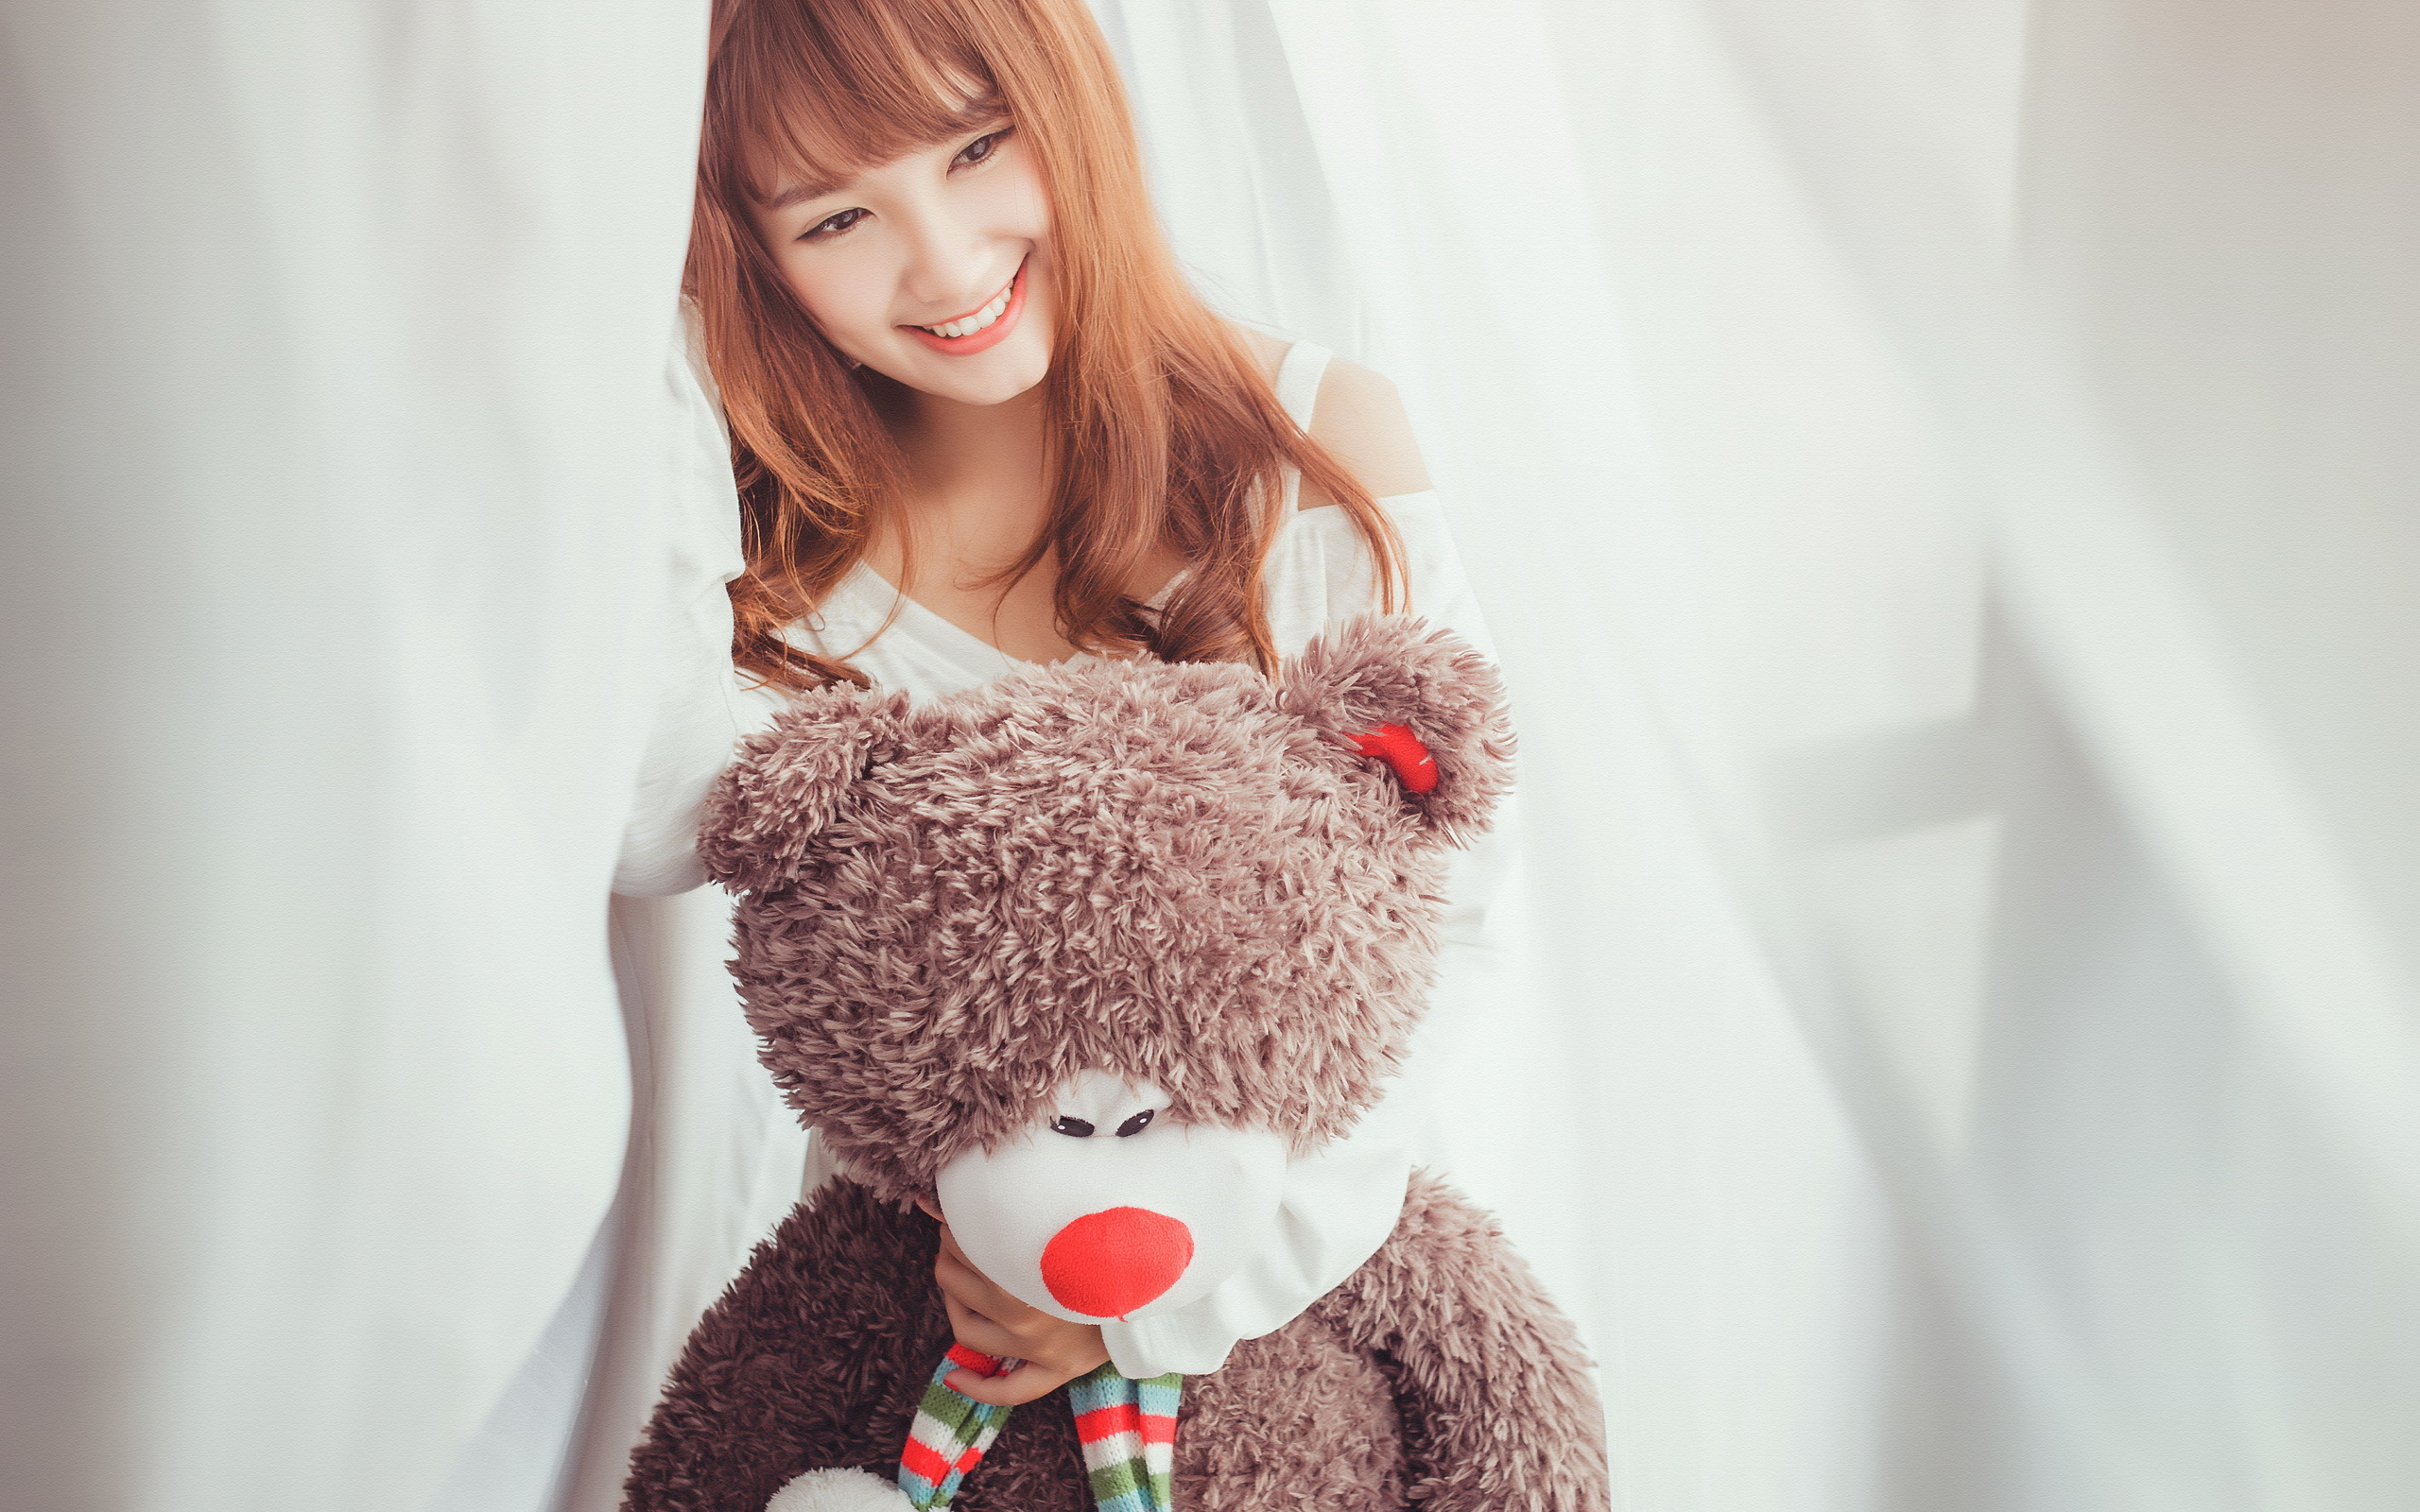 bear asian personals Bear valley springs's best 100% free asian online dating site meet cute asian singles in california with our free bear valley springs asian dating service loads of single asian men and women are looking for their match on the internet's best website for meeting asians in bear valley springs.